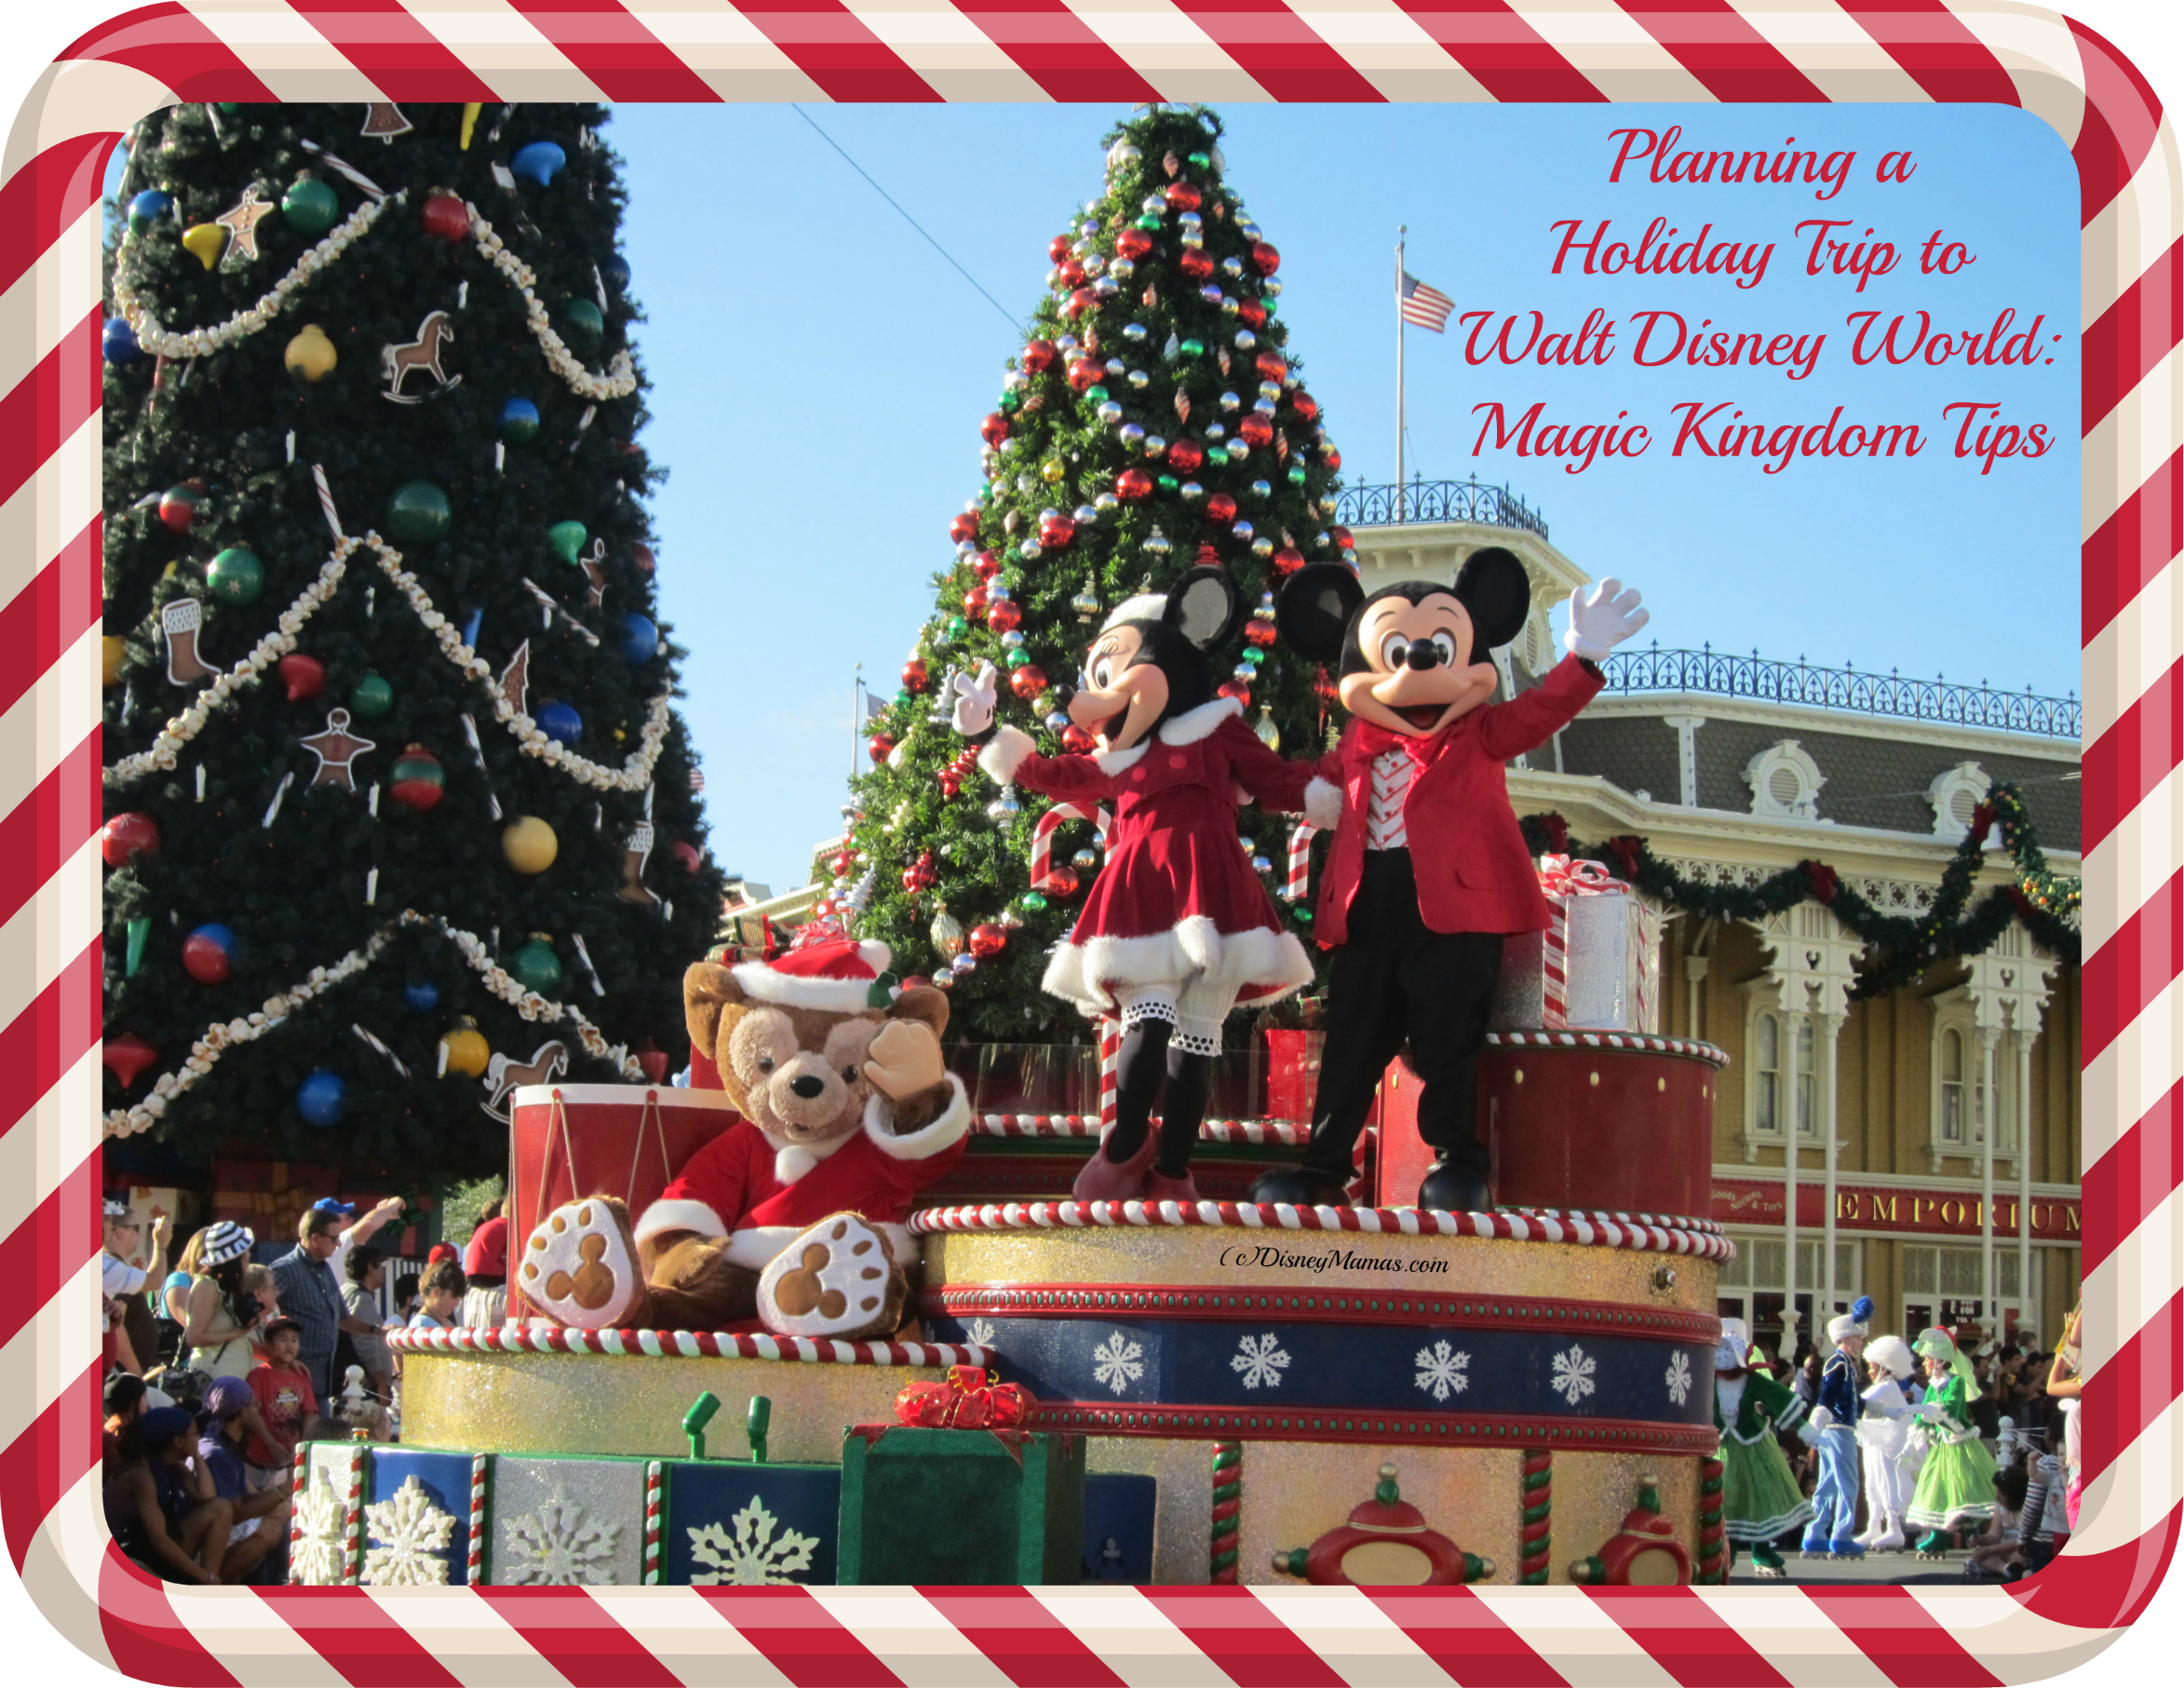 Tips for Touring Magic Kingdom During the Holidays